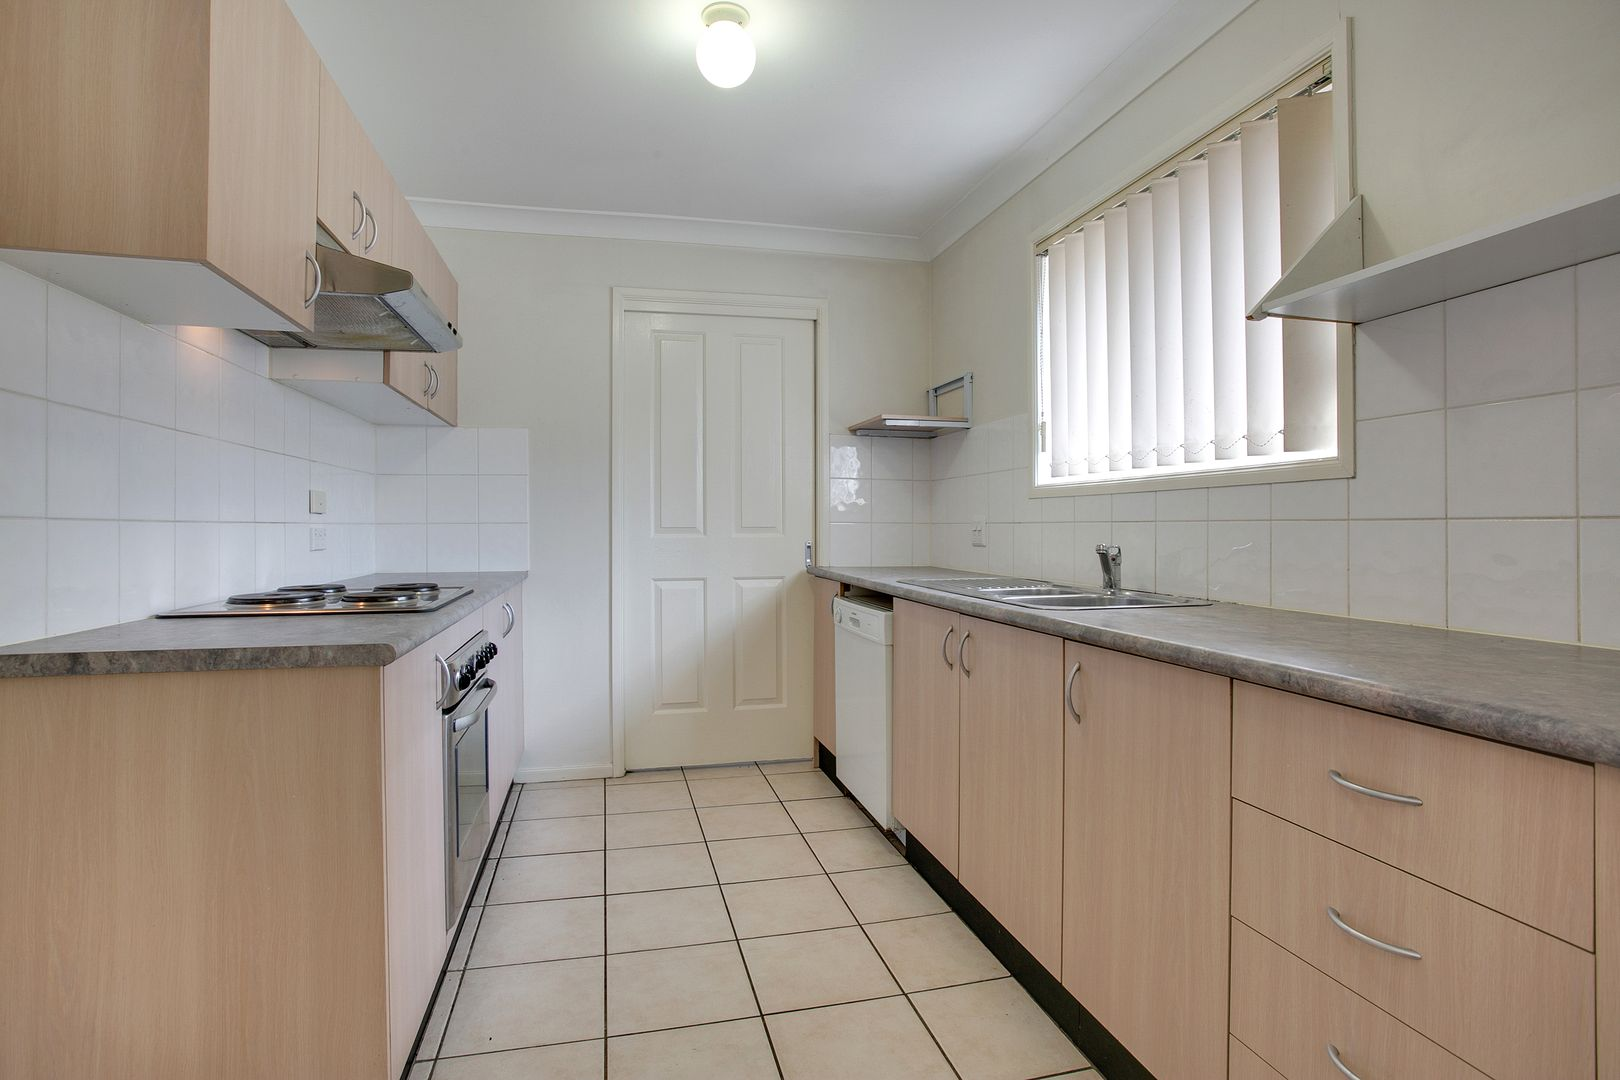 15/139 Stafford Street, Penrith NSW 2750, Image 2